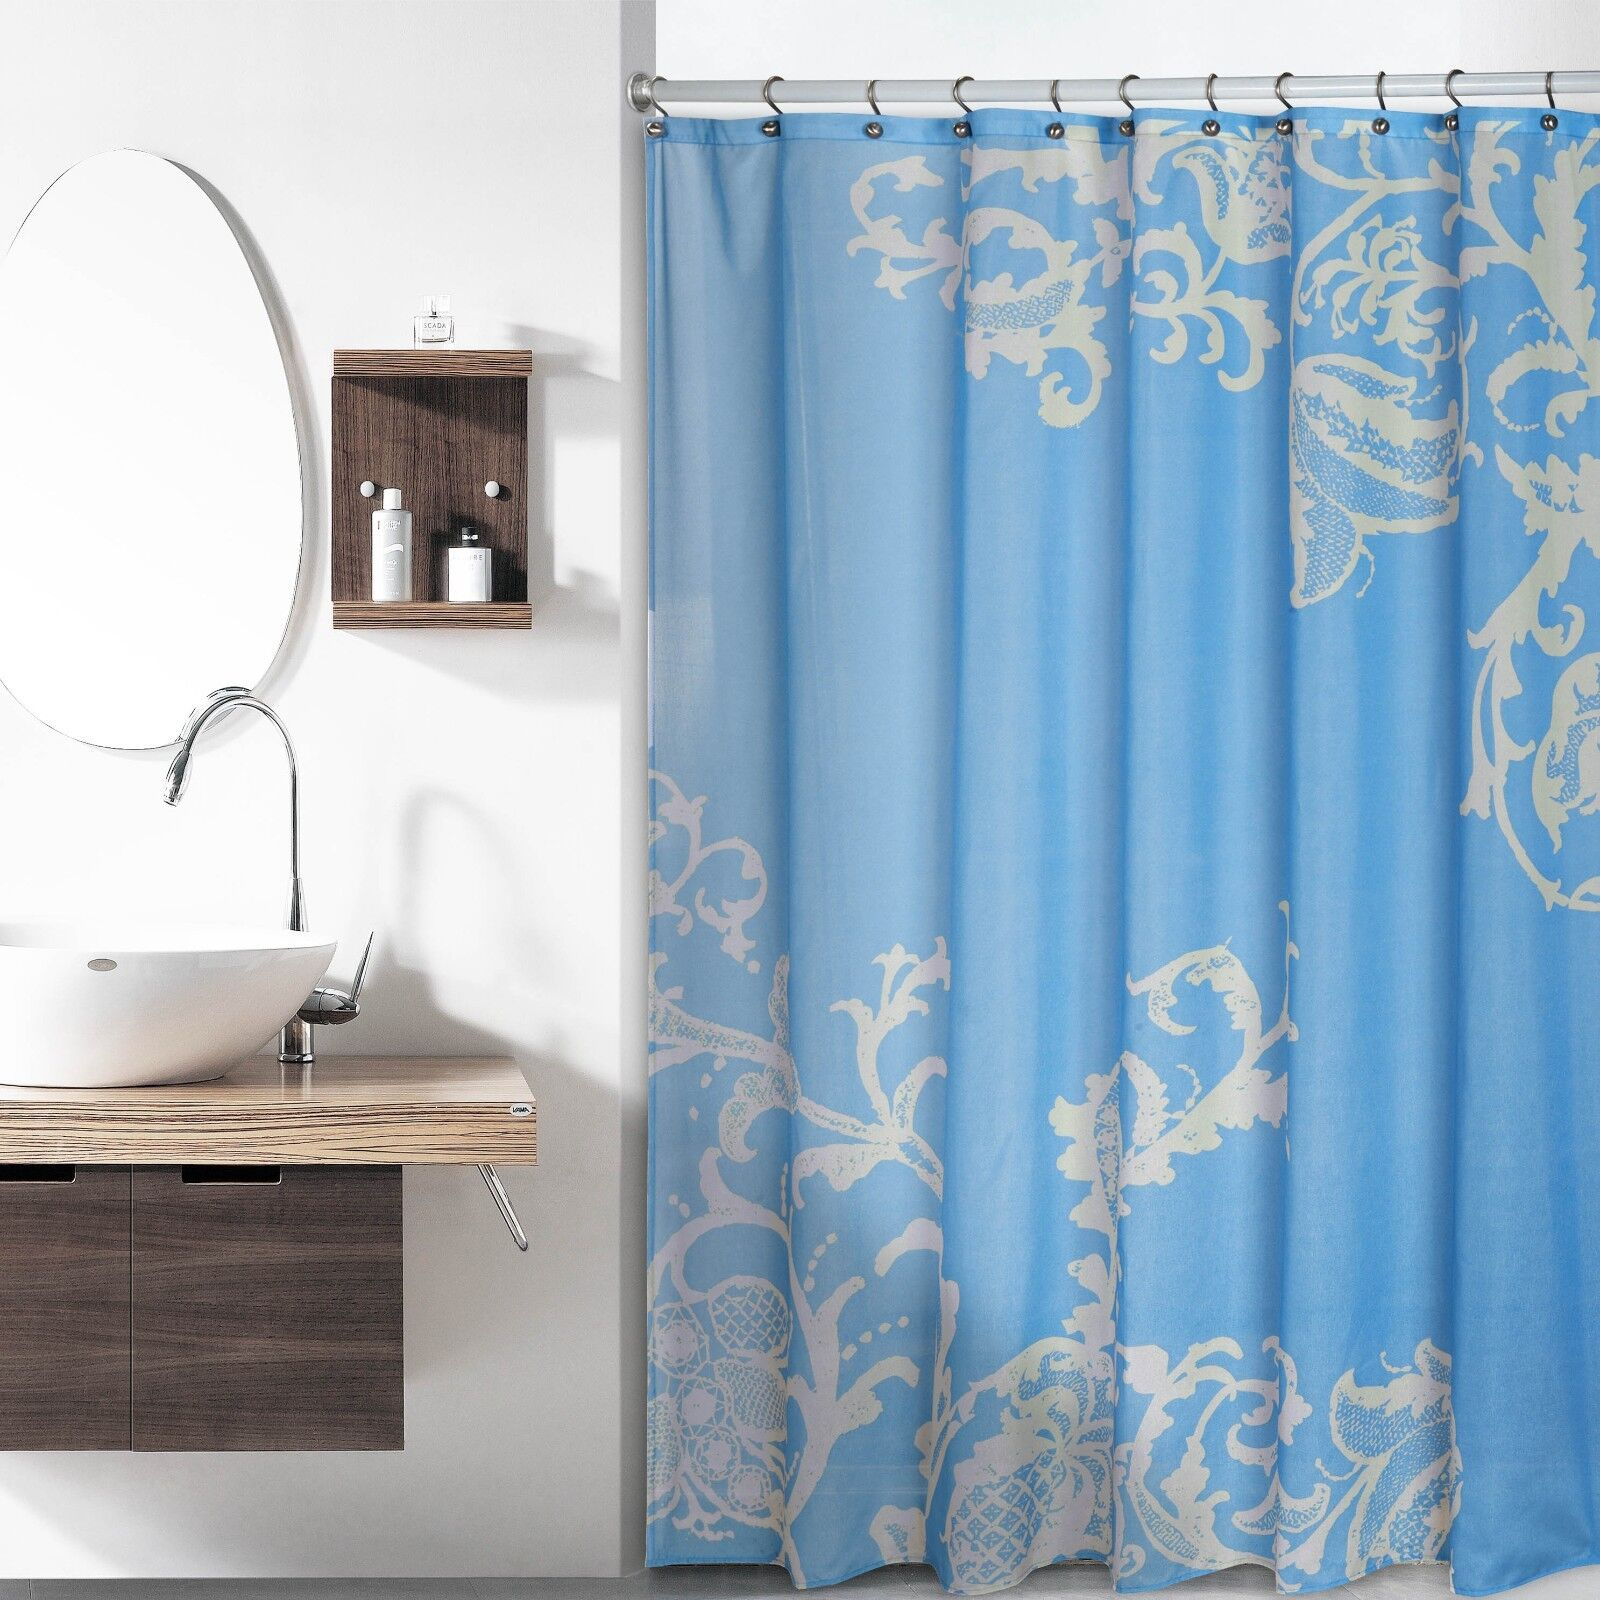 Blue Luxury Fabric Shower Curtain With Beige Floral Pattern